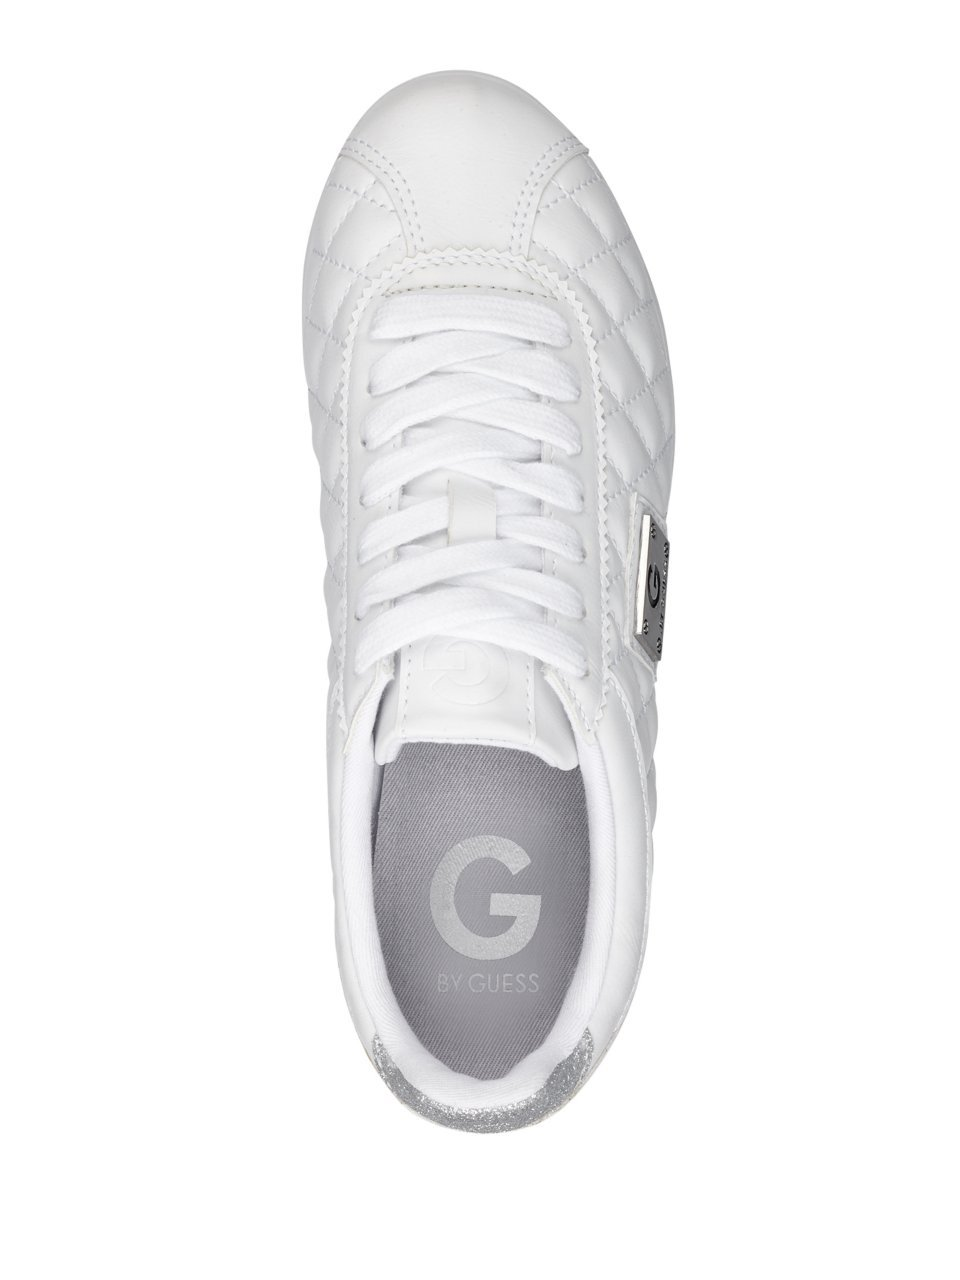 G by GUESS Women's Romio Metallic Quilted Sneakers B07DTRYKPK 7.5 B(M) US|White